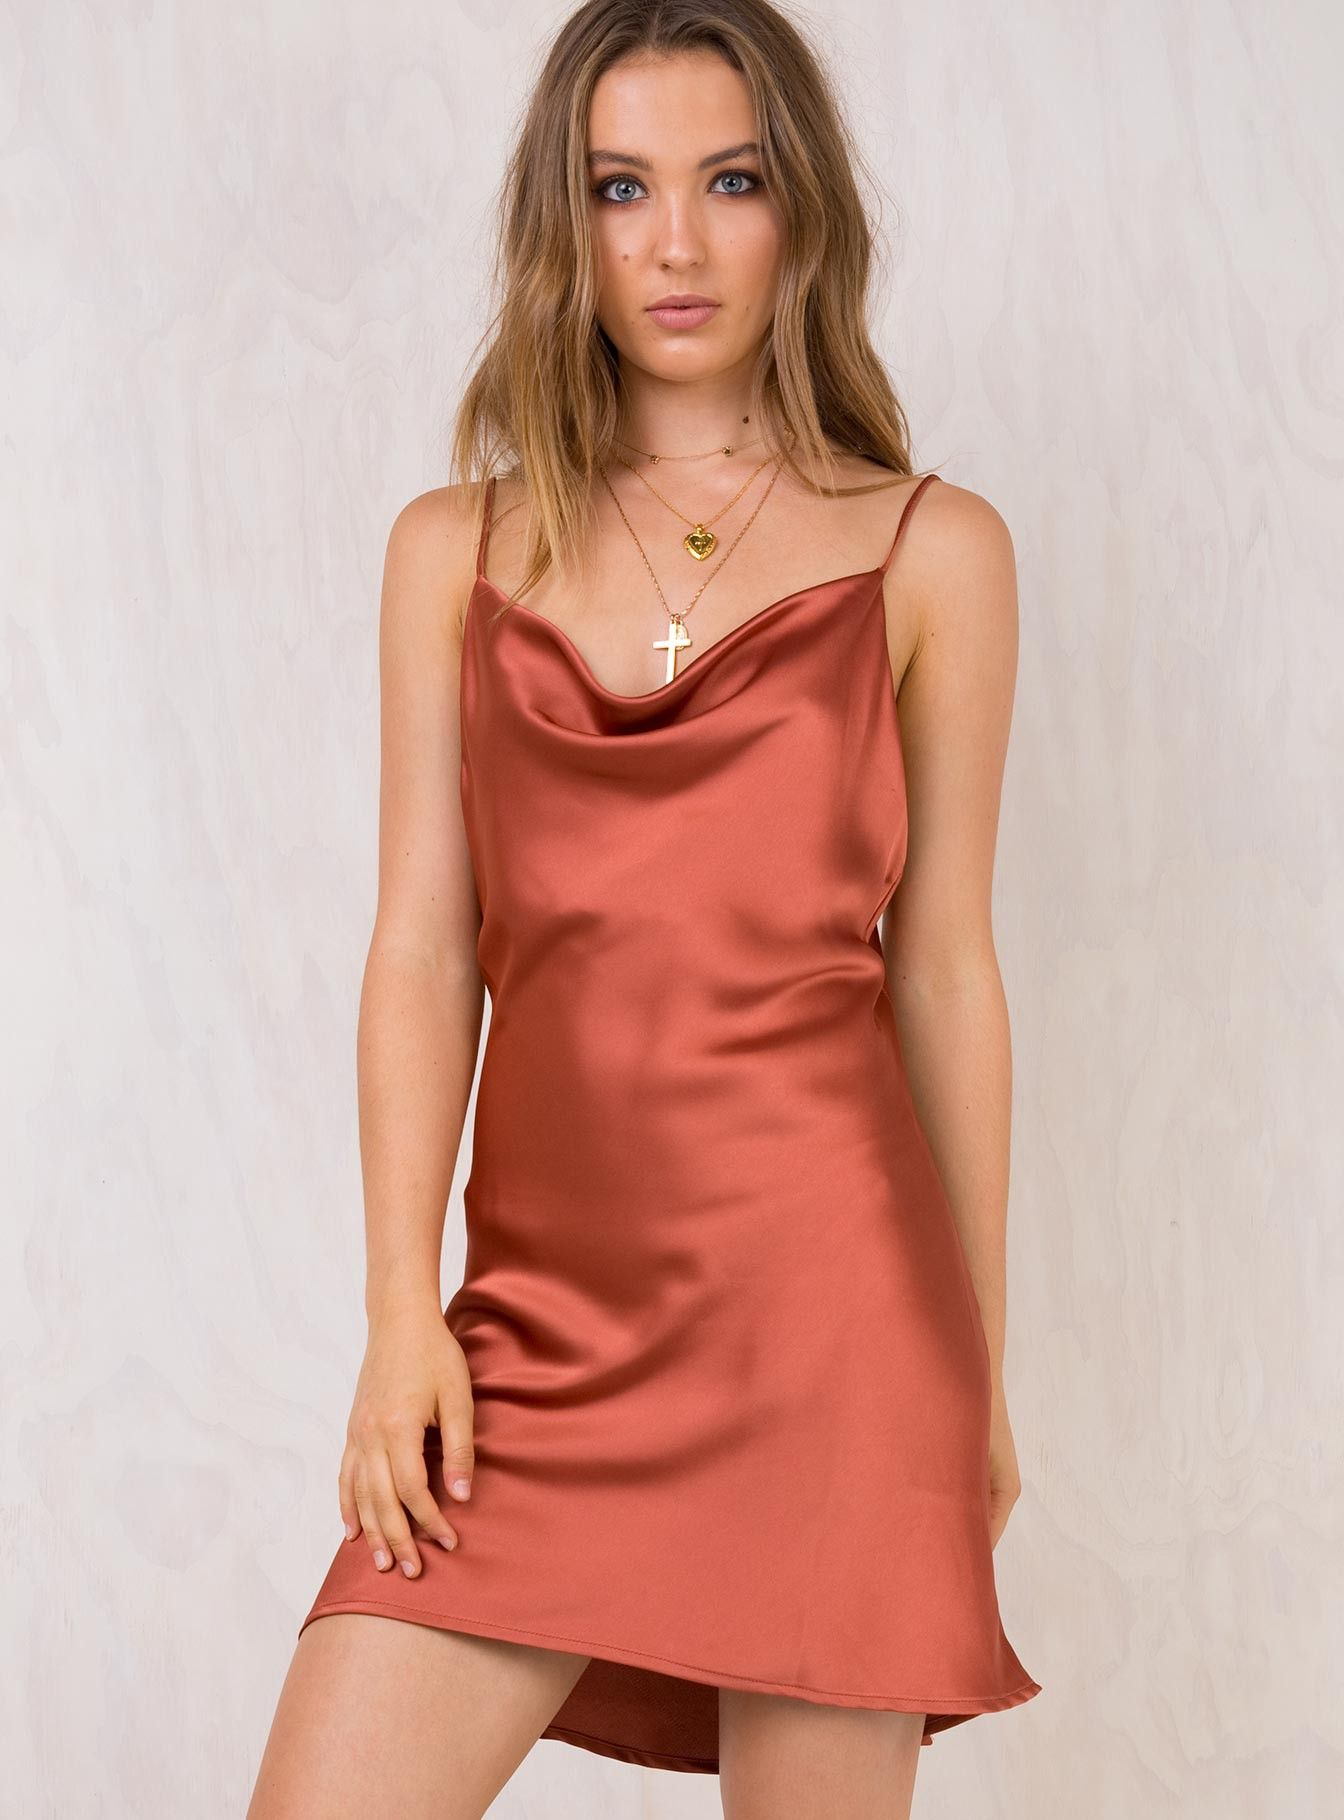 ee7f6415f053 Betta+Vanore+Mini+Dress+Rust+-+ Silky+mini+dress Cowl+neckline Low+cut+back  Adjustable+straps Smooth+silky+material Lined+bust 100%+Polyester ...